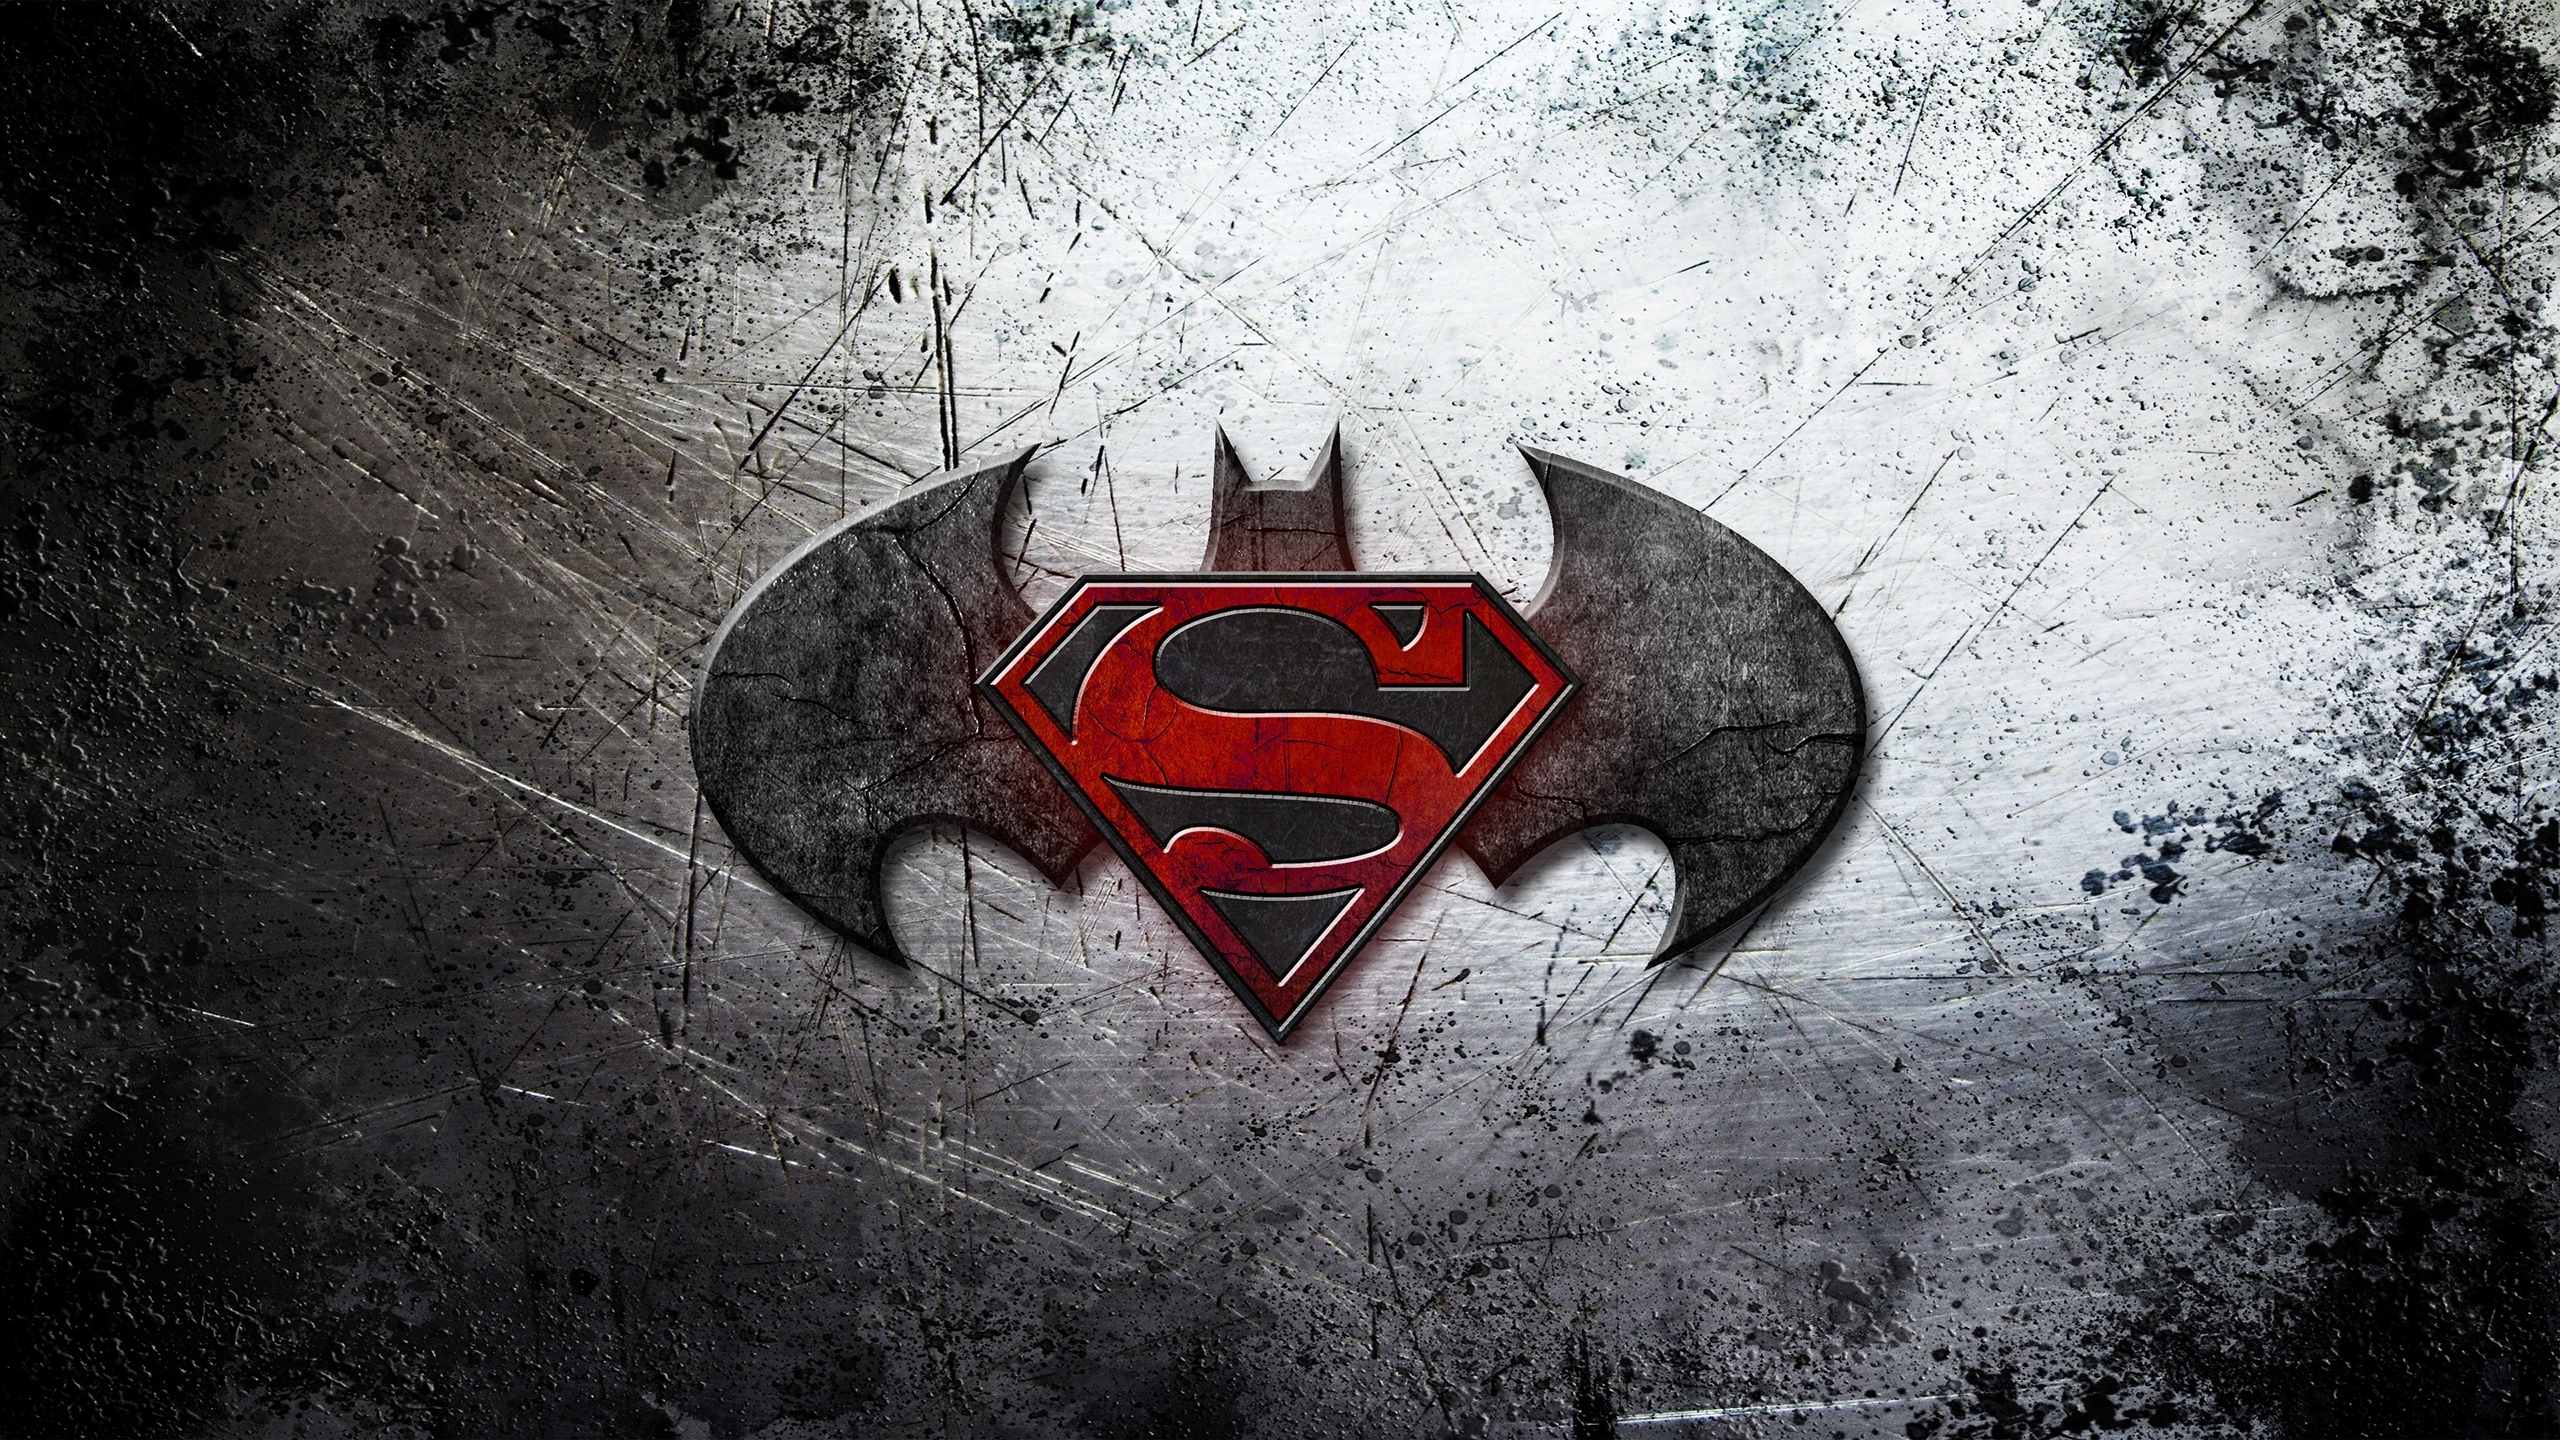 Clipart vs superman image freeuse library Superman hd clipart 1080p - ClipartFox image freeuse library